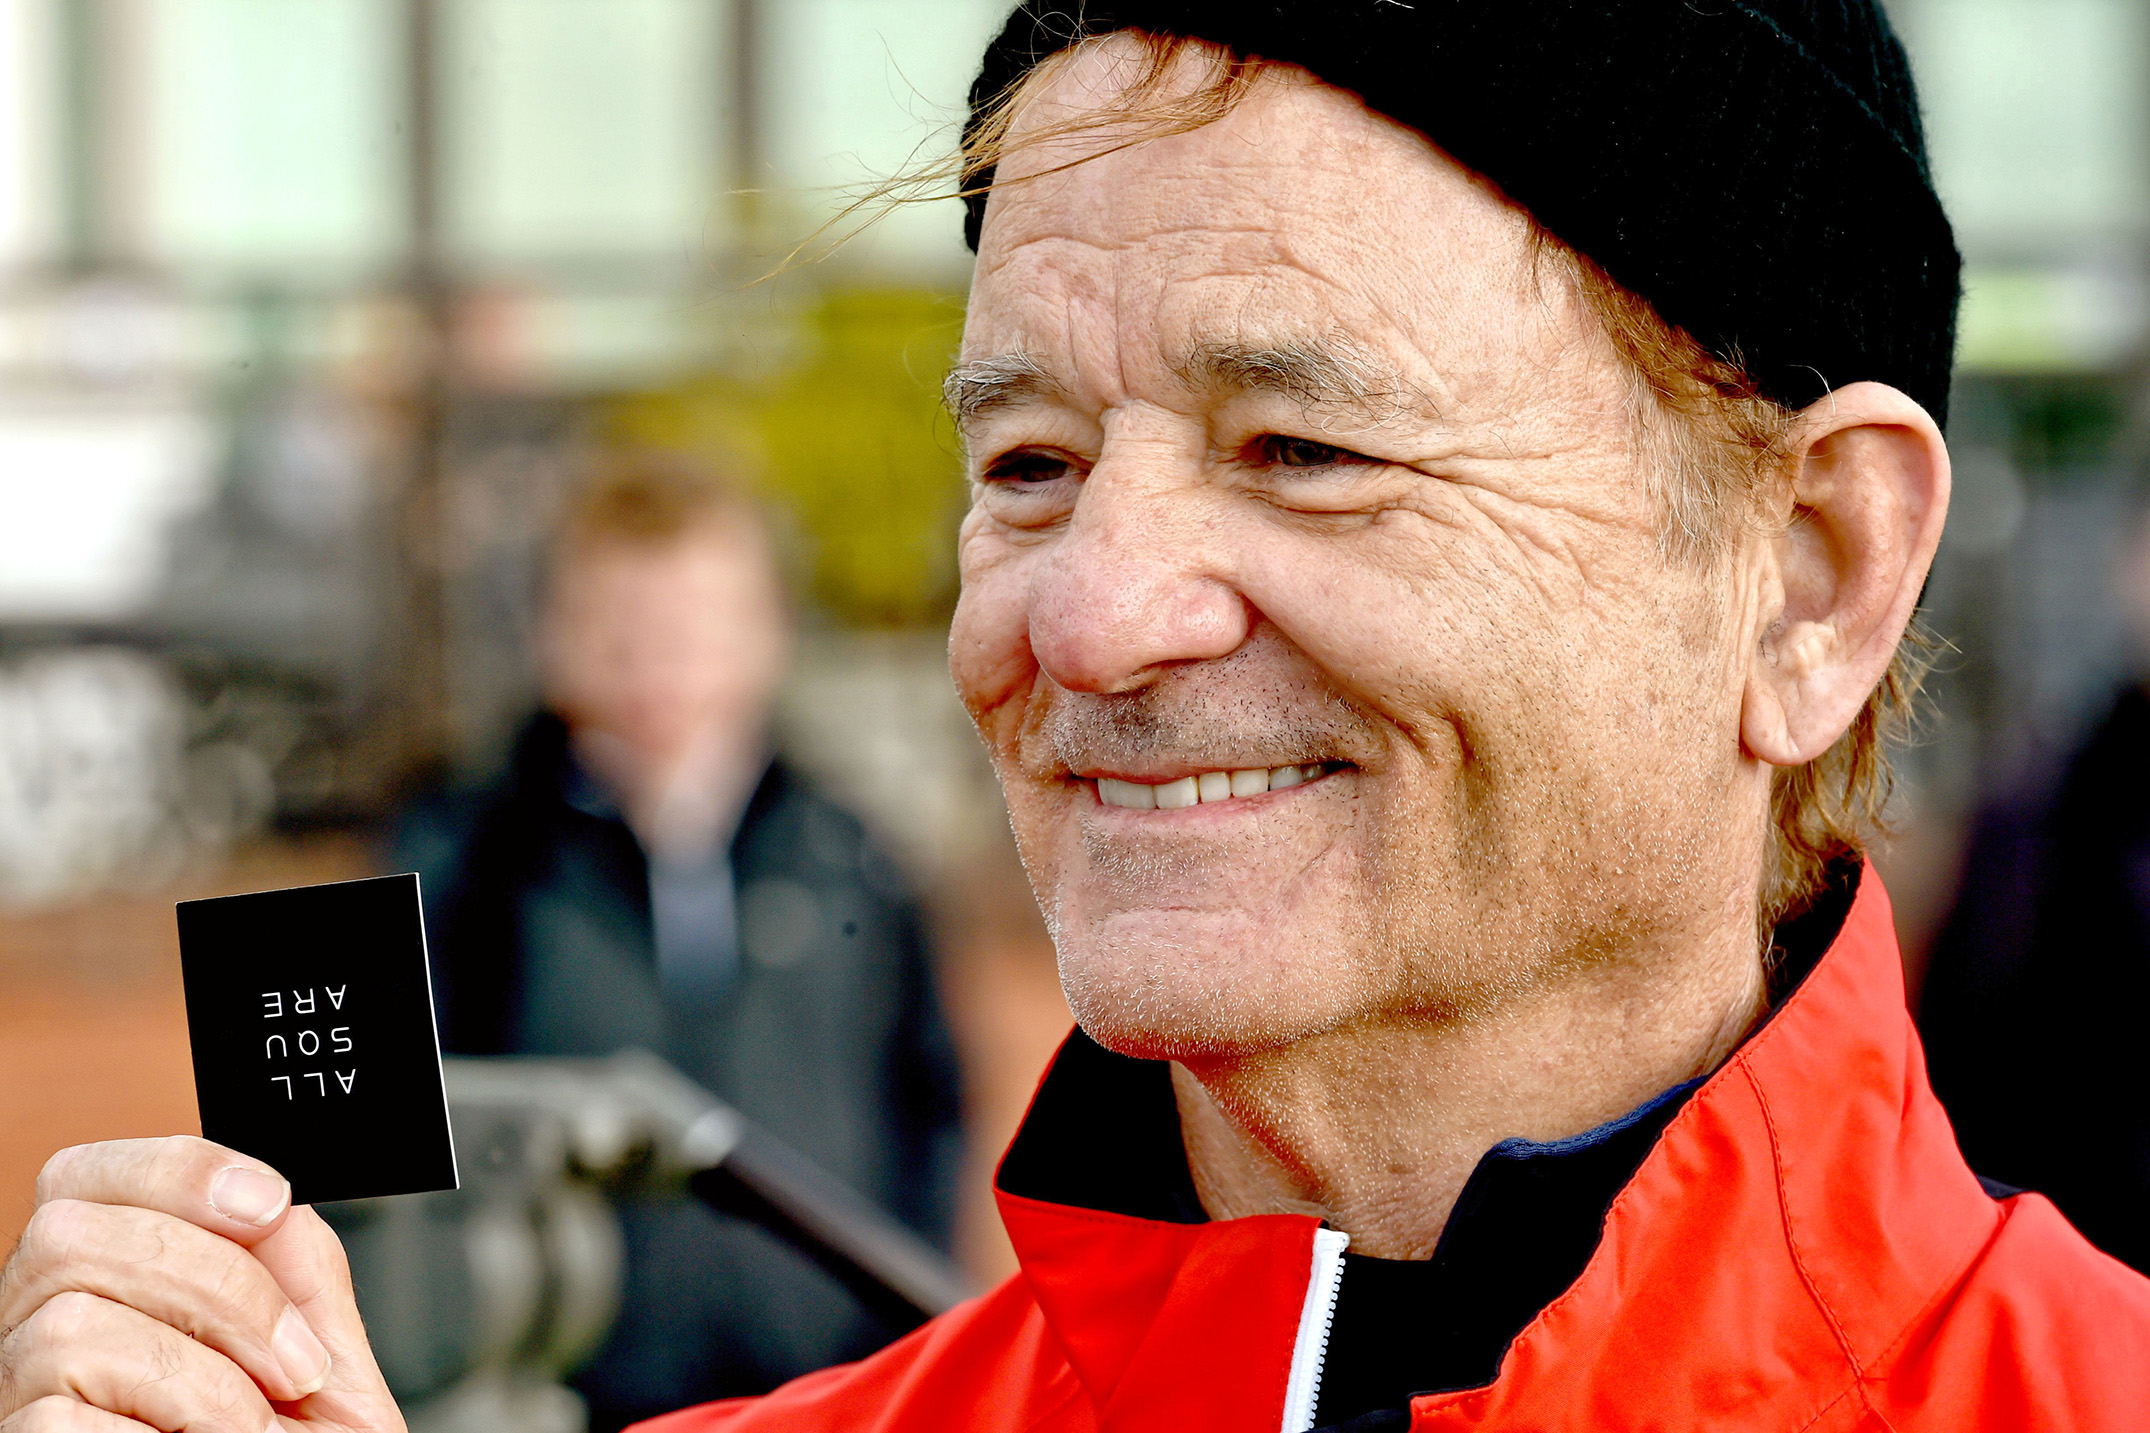 BillMurray_resize.jpg